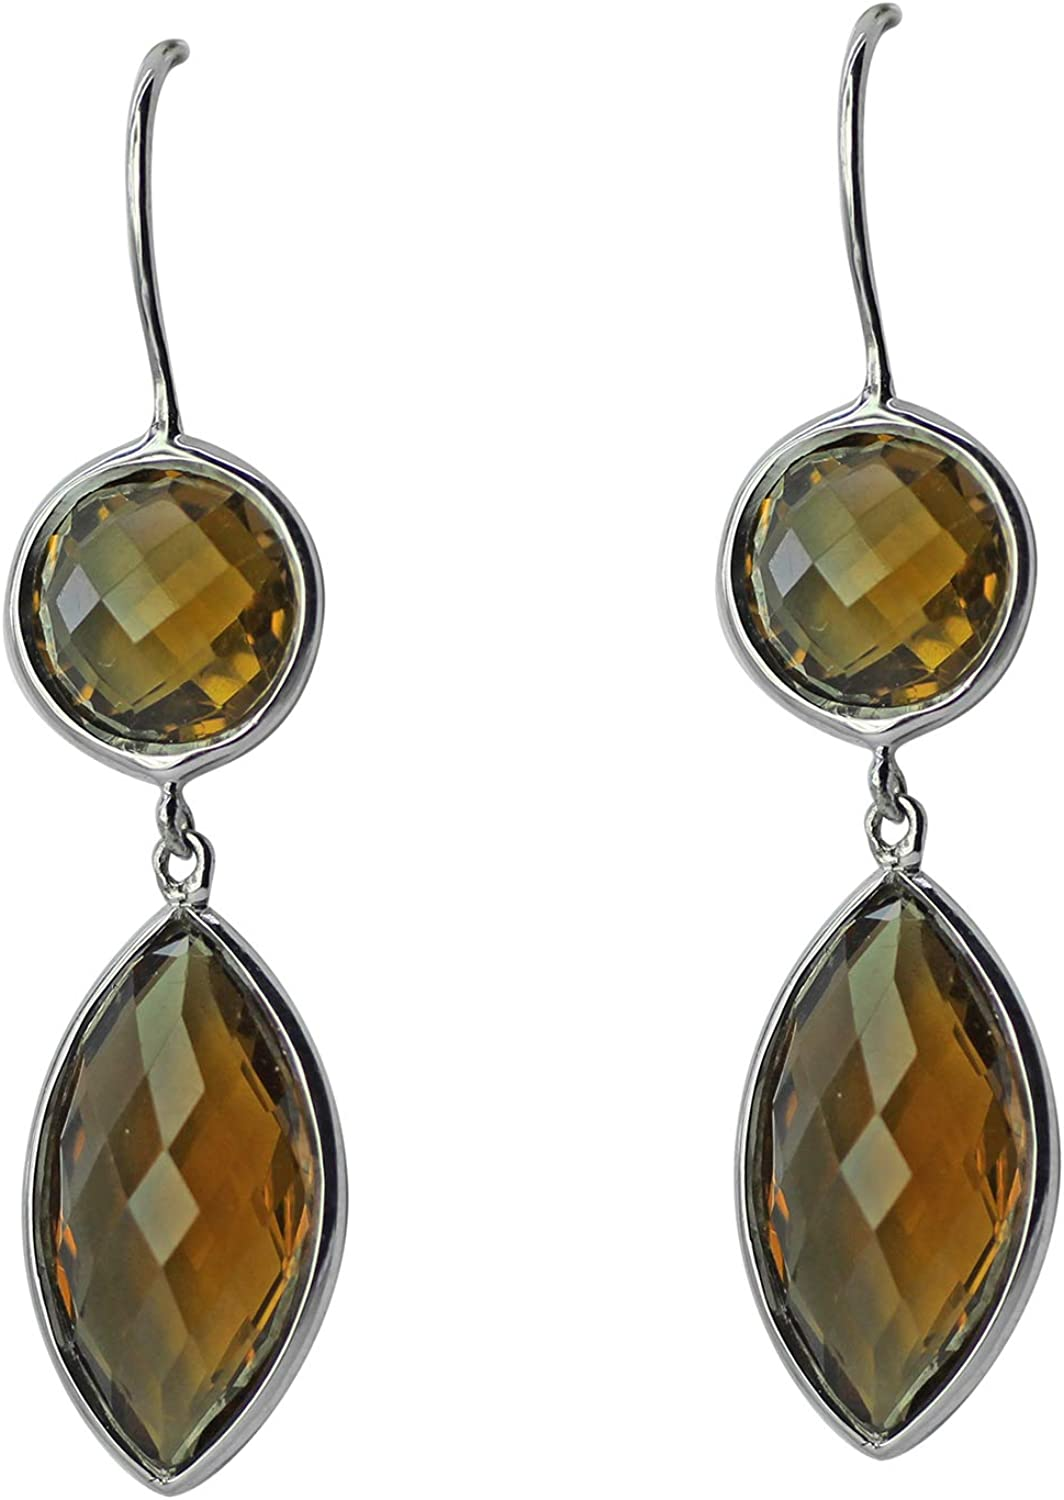 Carillon Cognac Quartz Marquise Shape 67% OFF of fixed price Direct stock discount Jewelry 925 Gemstone Sterl